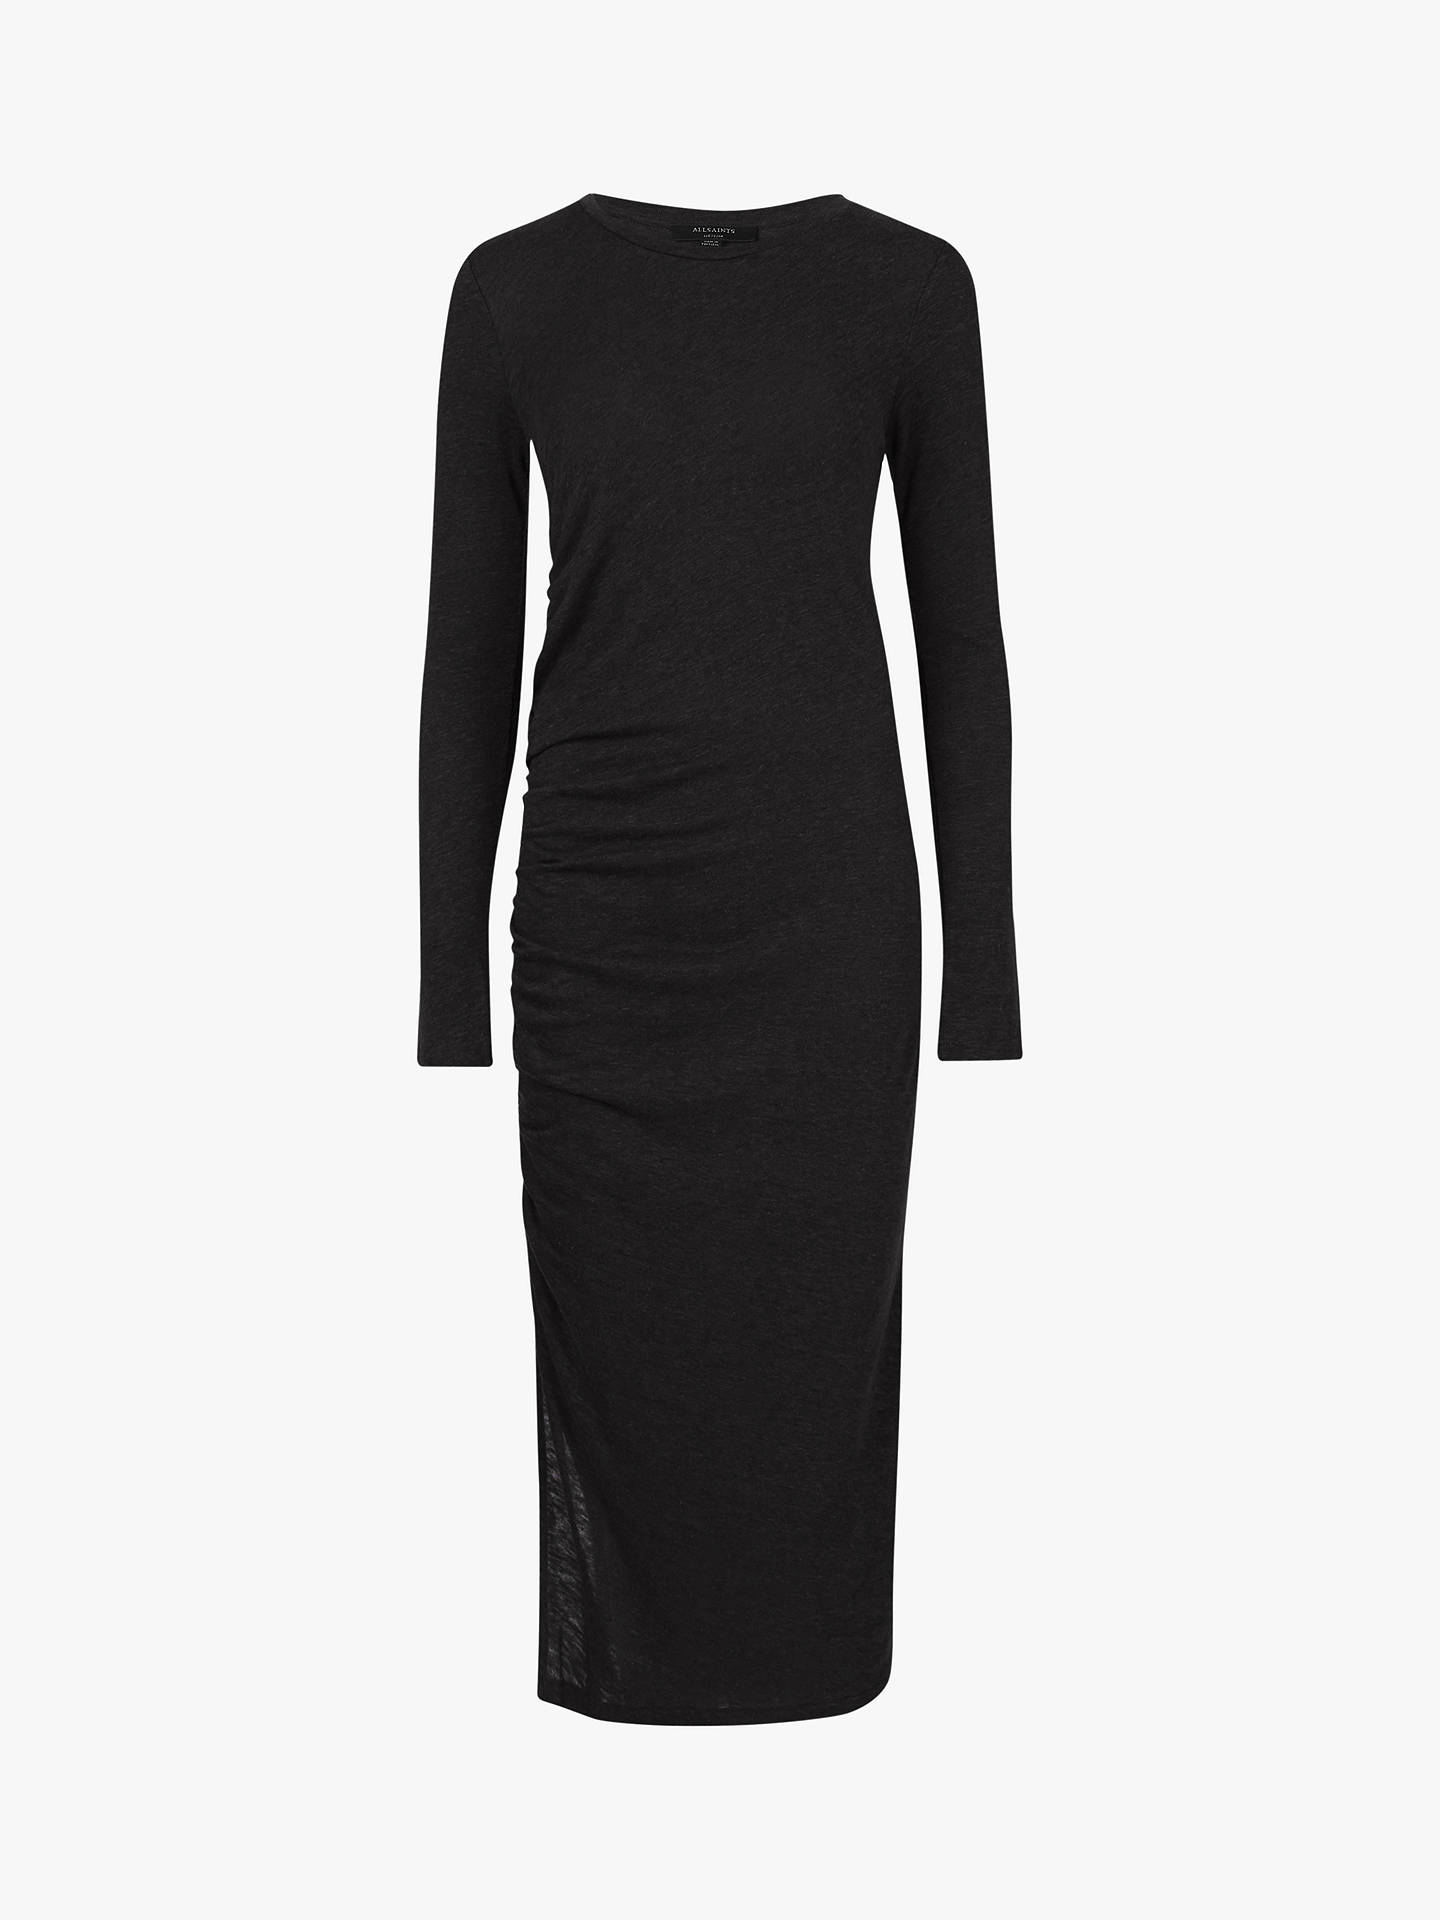 Buy AllSaints Tina Long Sleeve Dress, Black, M Online at johnlewis.com